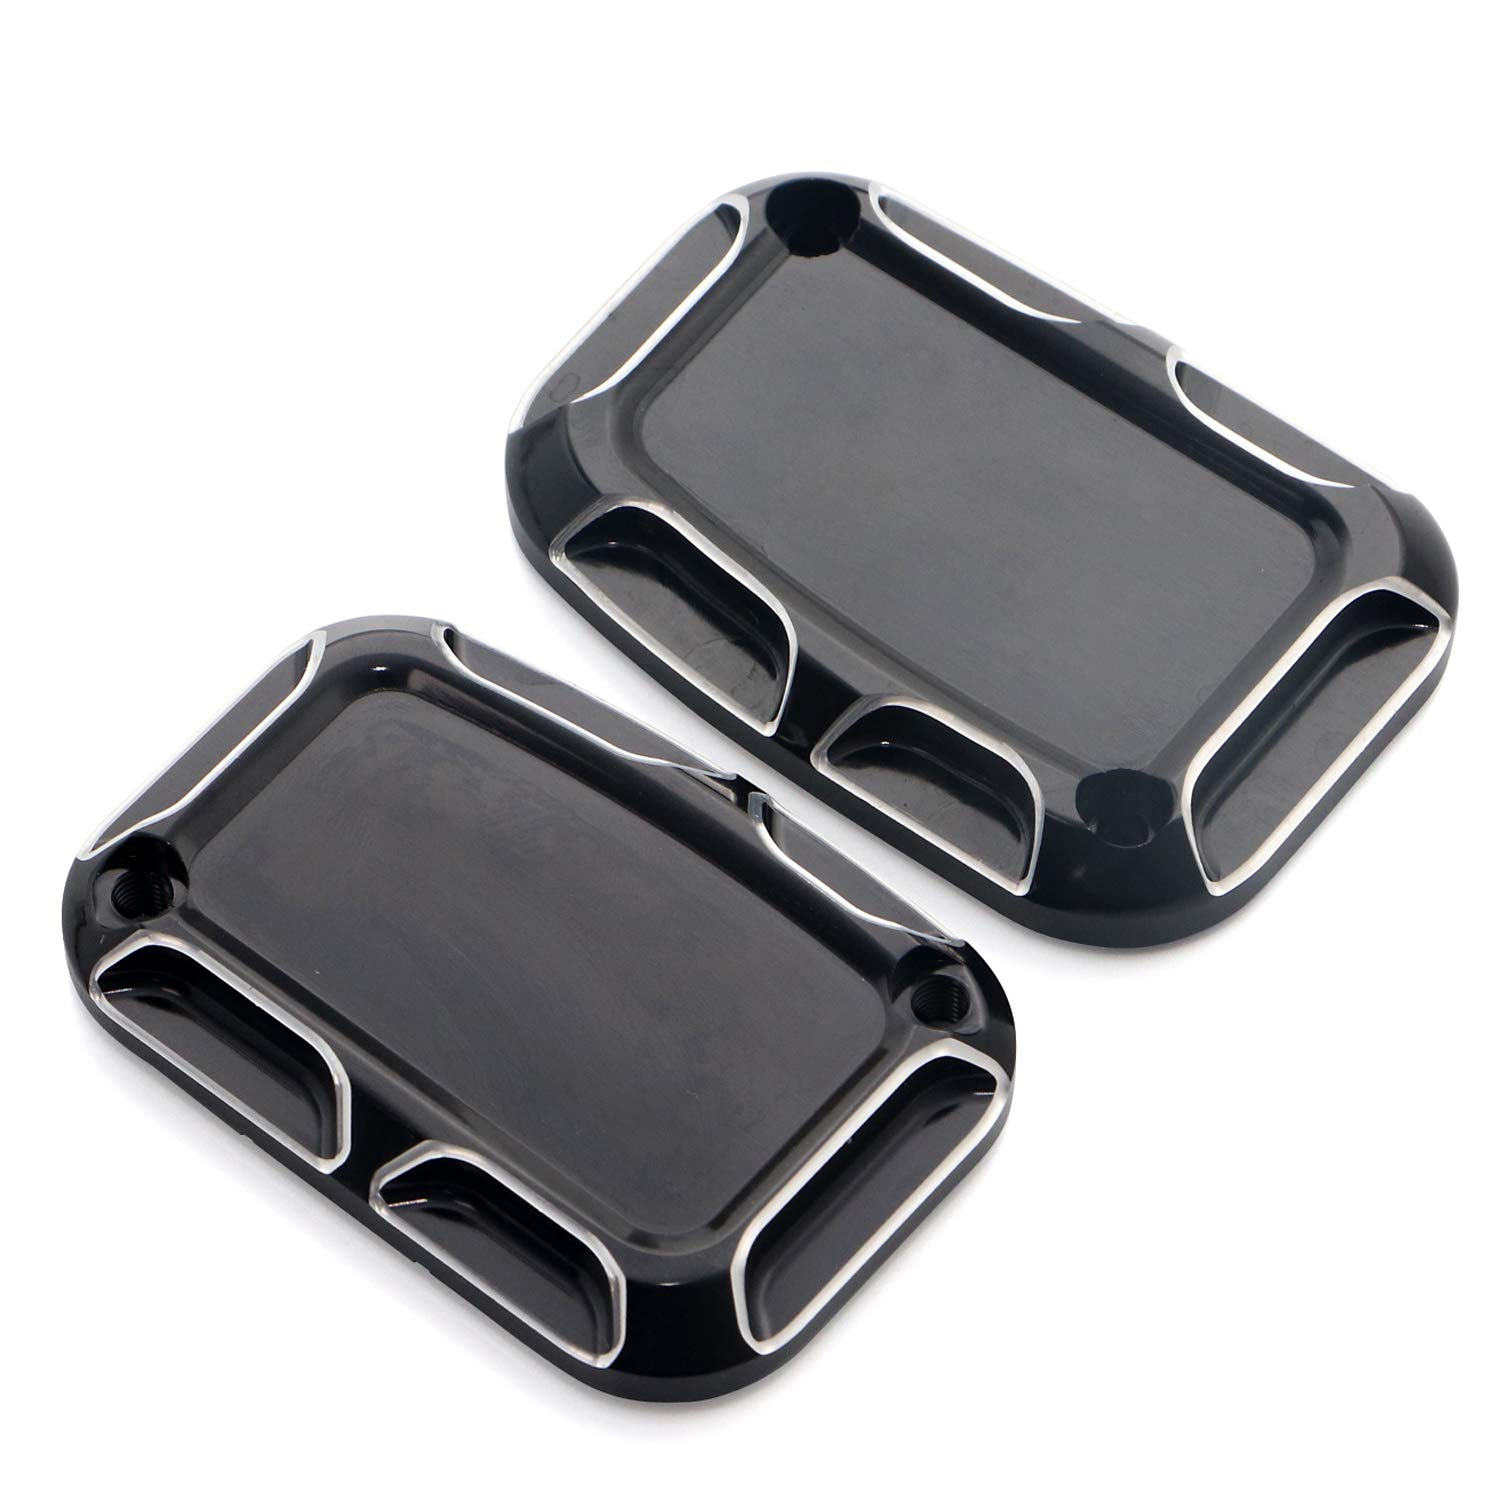 CNC Left Brake Master Clutch Cylinder Covers For Harley Touring Electra Glide Road Glide Road King Street Glide 2008-2014